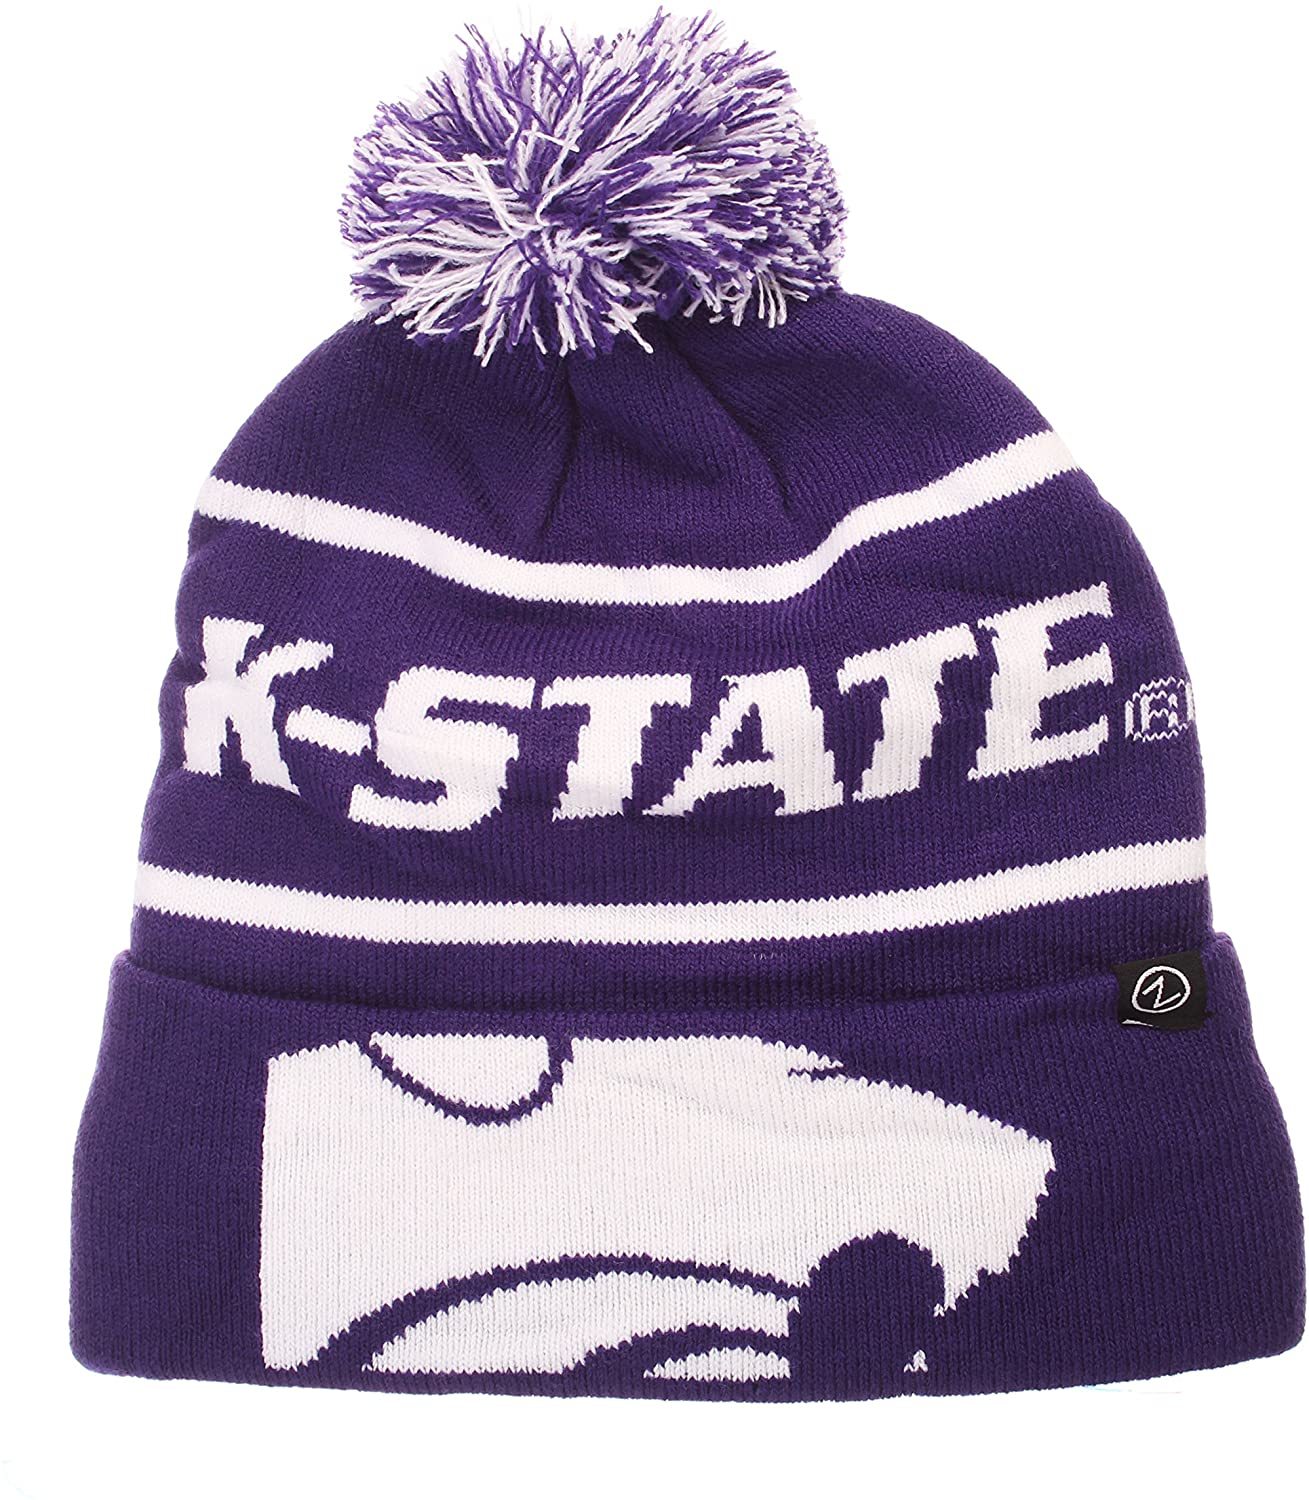 NCAA Zephyr Men's Bandit Knit Beanie Hat